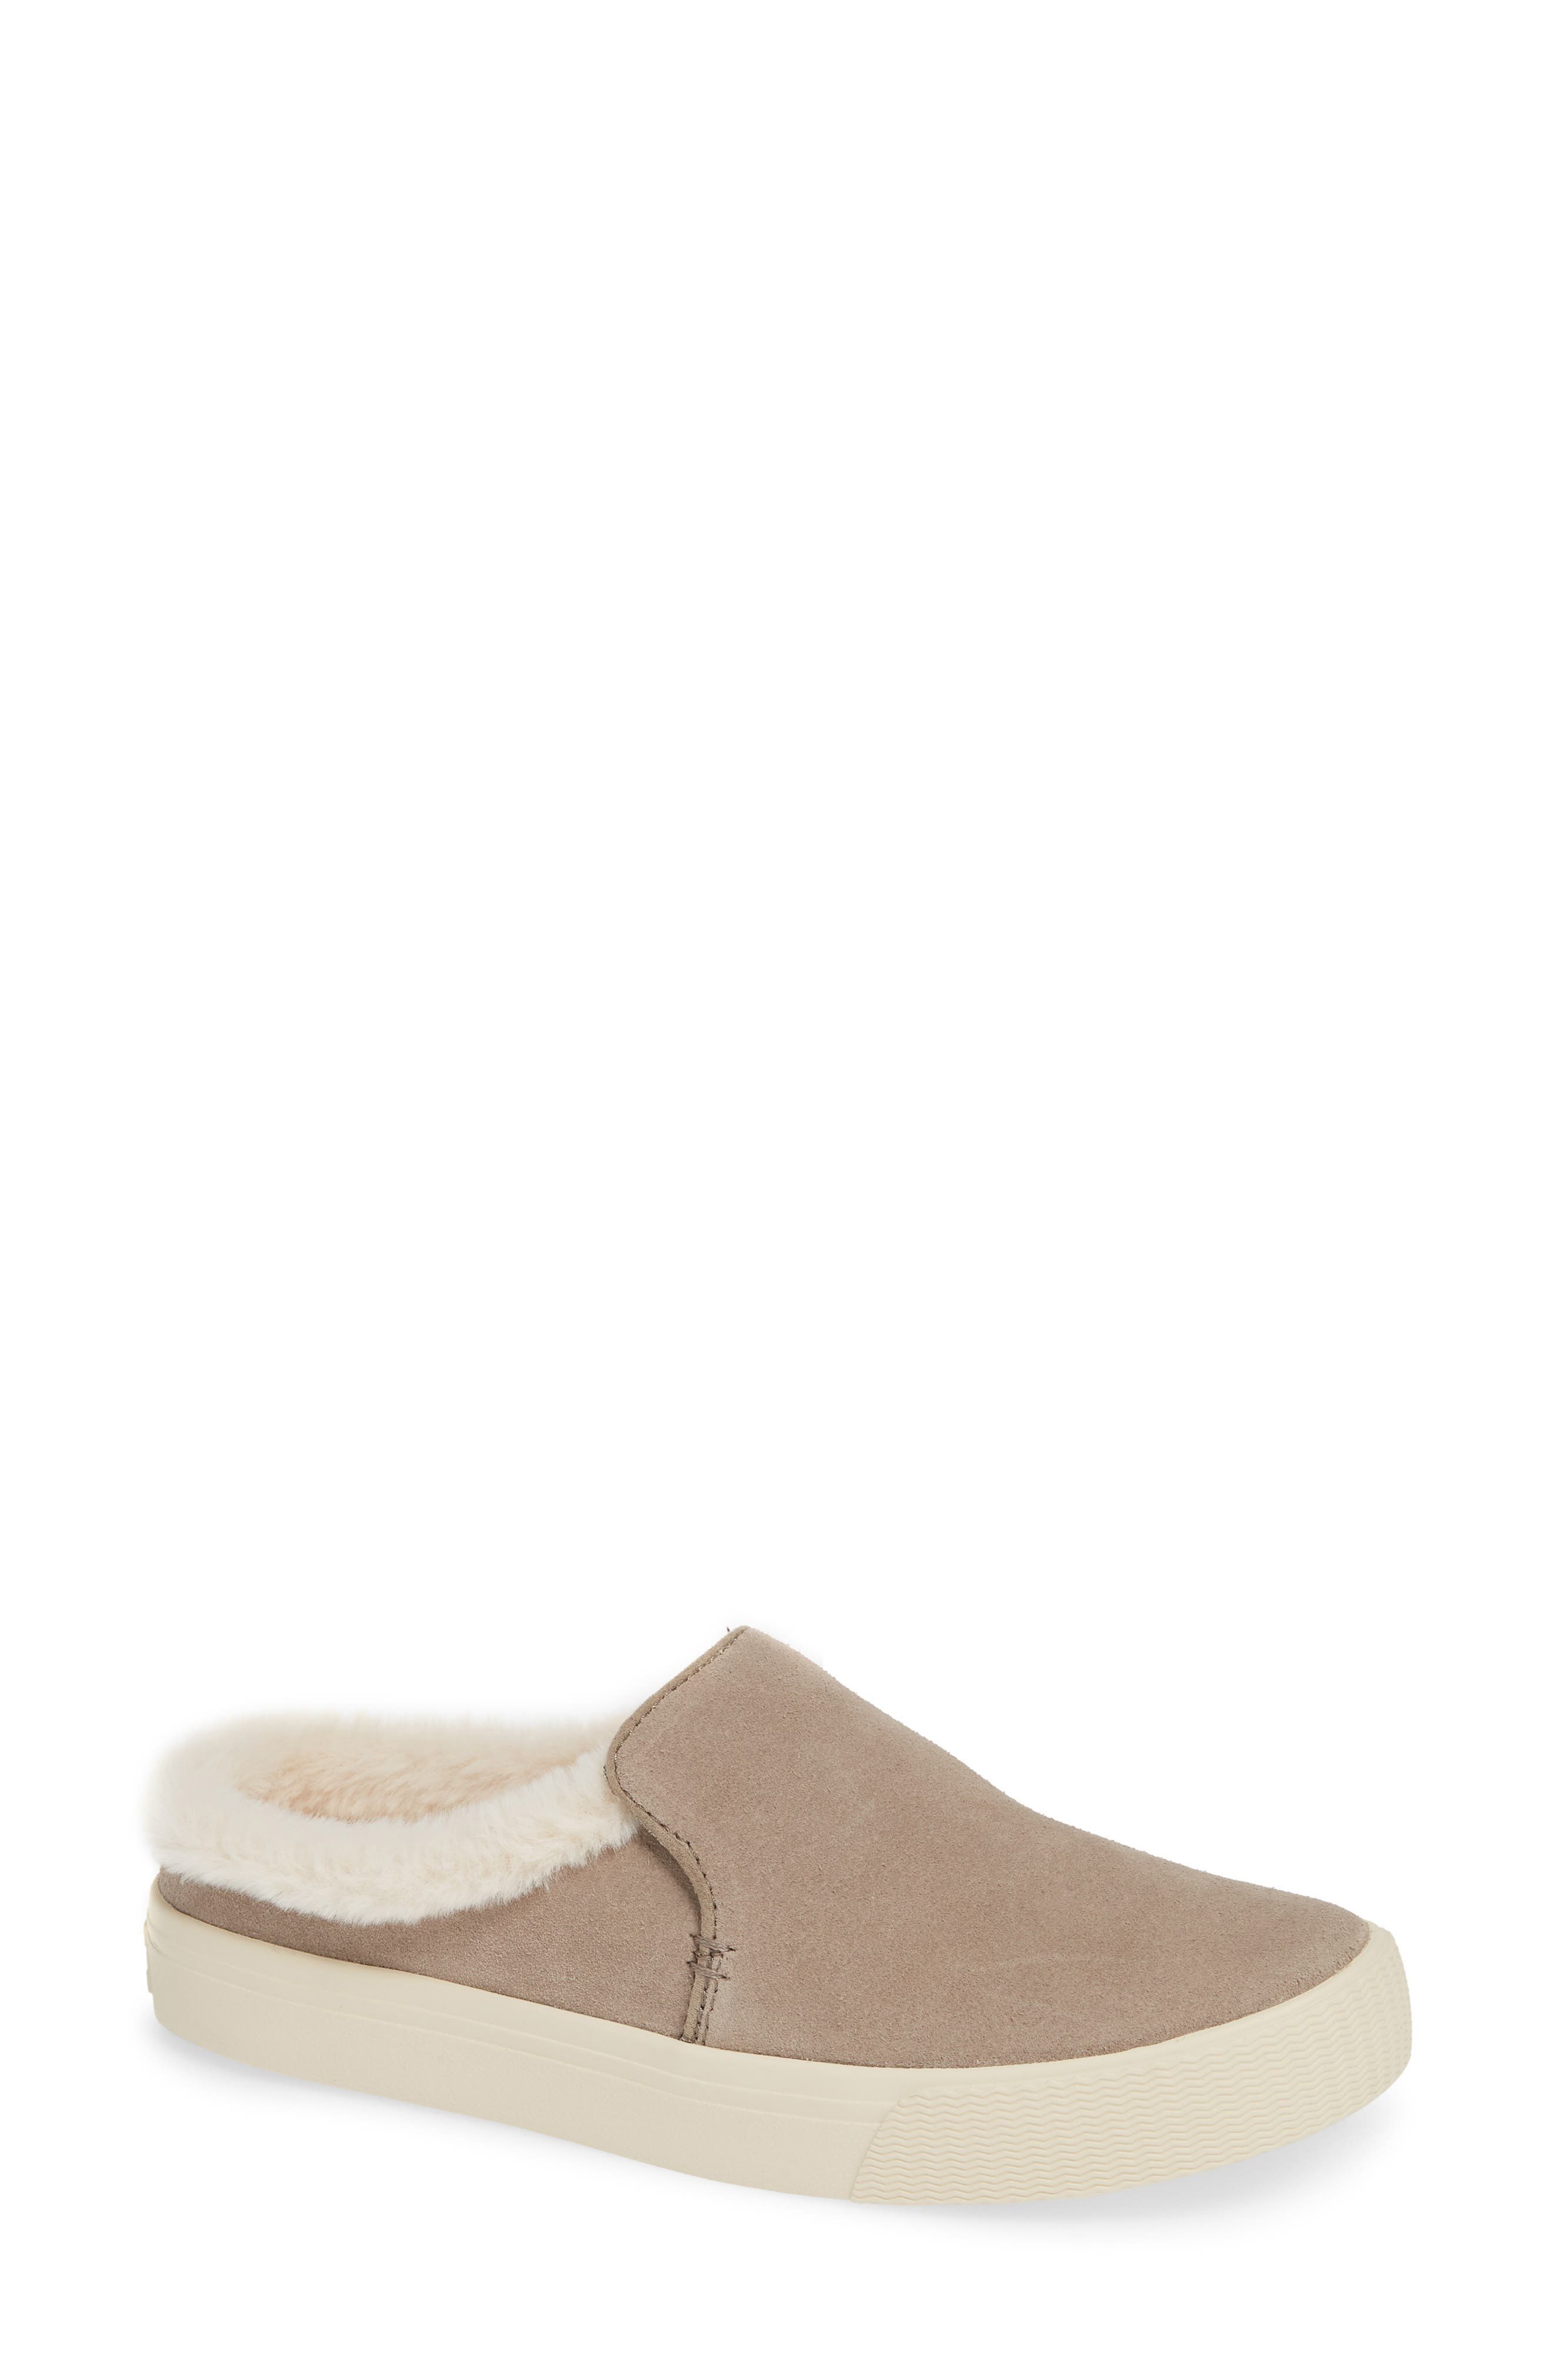 TOMS Sunrise Faux Fur Lined Slip-On Sneaker in Desert Taupe Suede